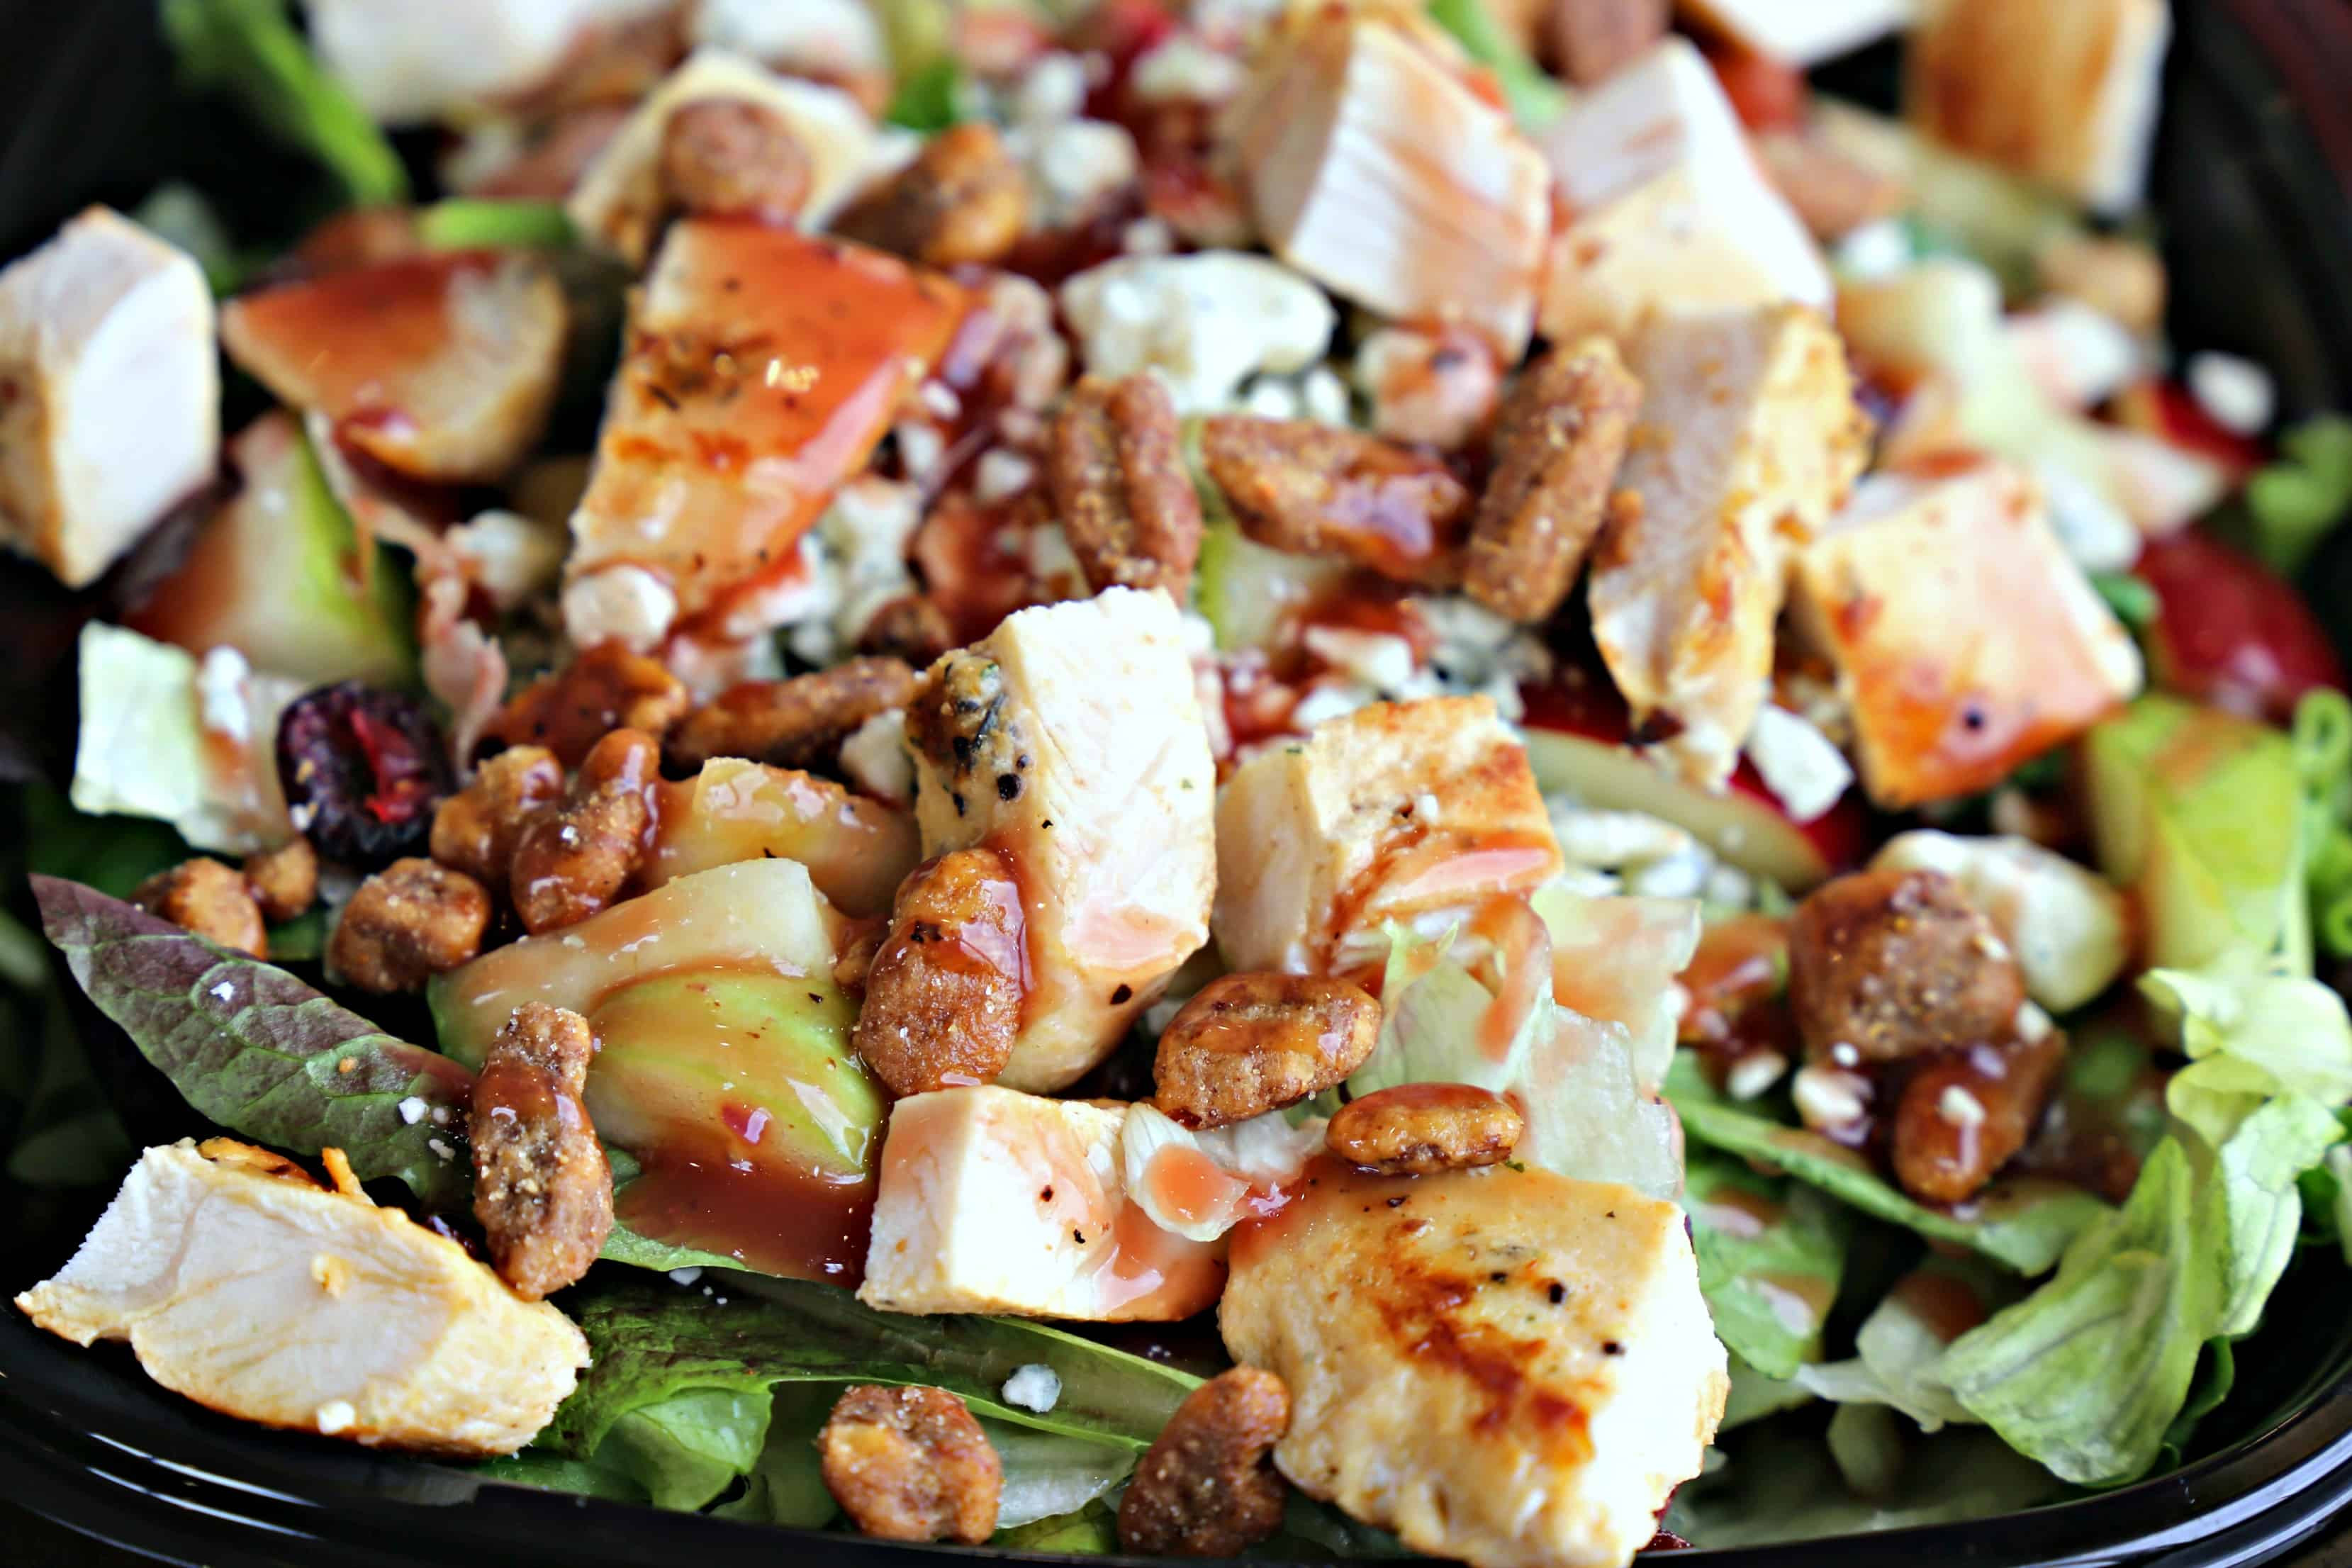 Healthy Fast Food Salads  Healthy Fast Food Options Wendy s Salads